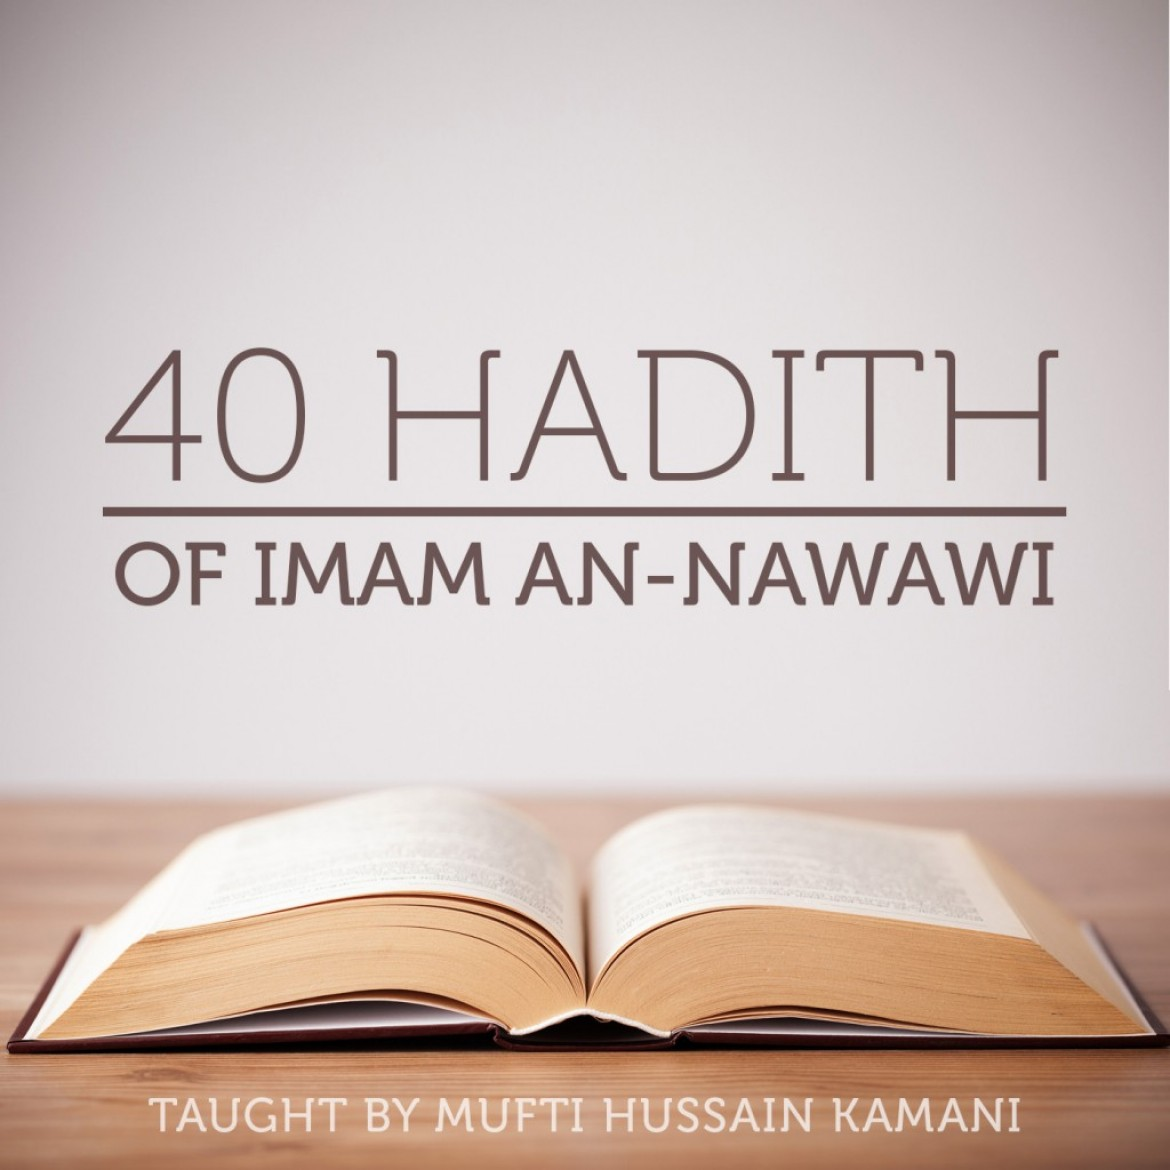 40 Ahadith of Imam Nawawi – Hadith 35: Brotherhood: The Bond of Humanity